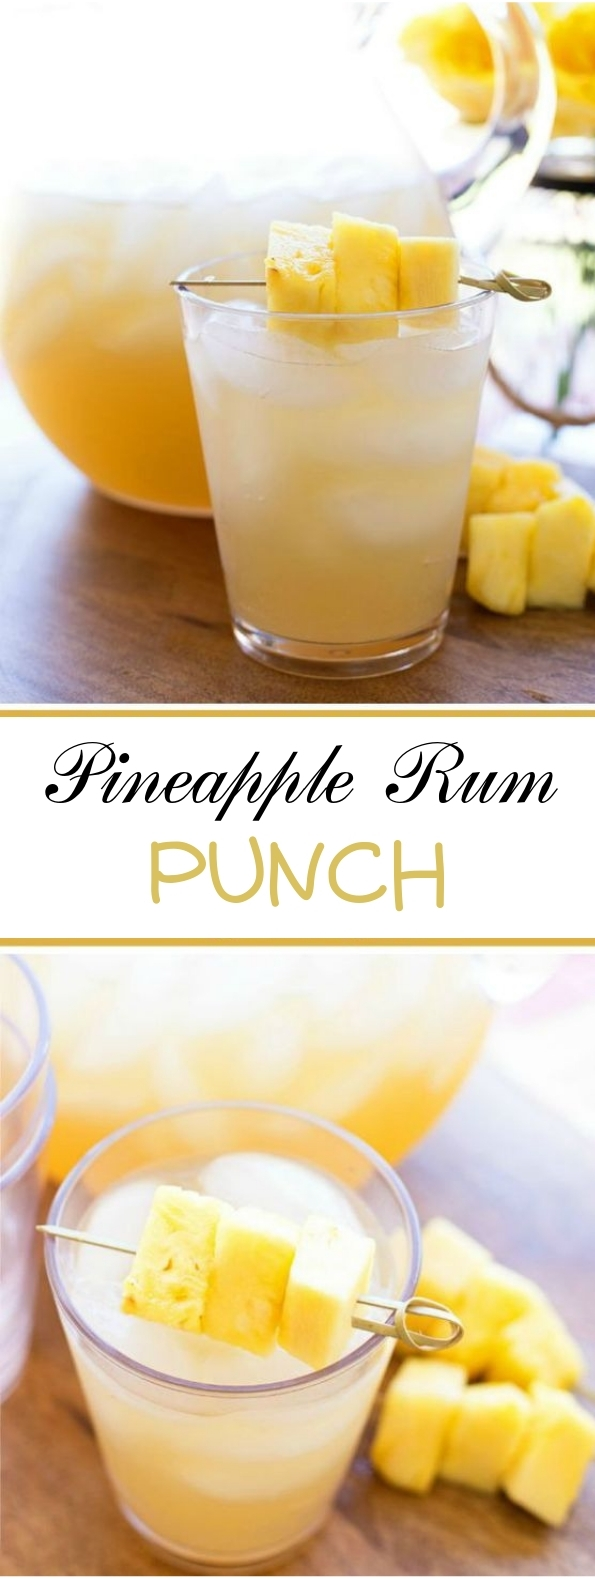 Pineapple Rum Punch #punch #drinks